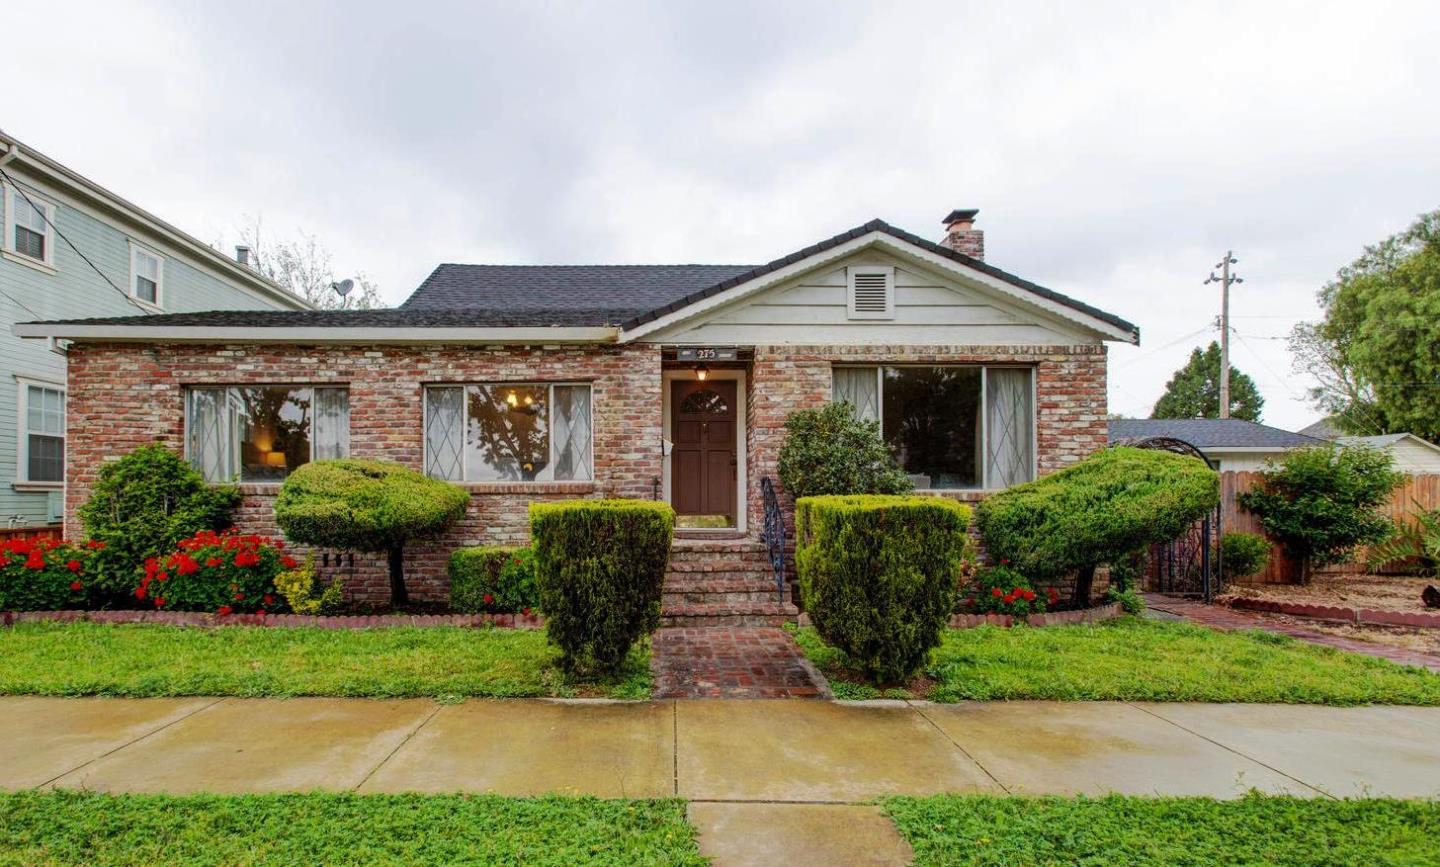 Additional photo for property listing at 275 W 6th Street  Gilroy, カリフォルニア 95020 アメリカ合衆国